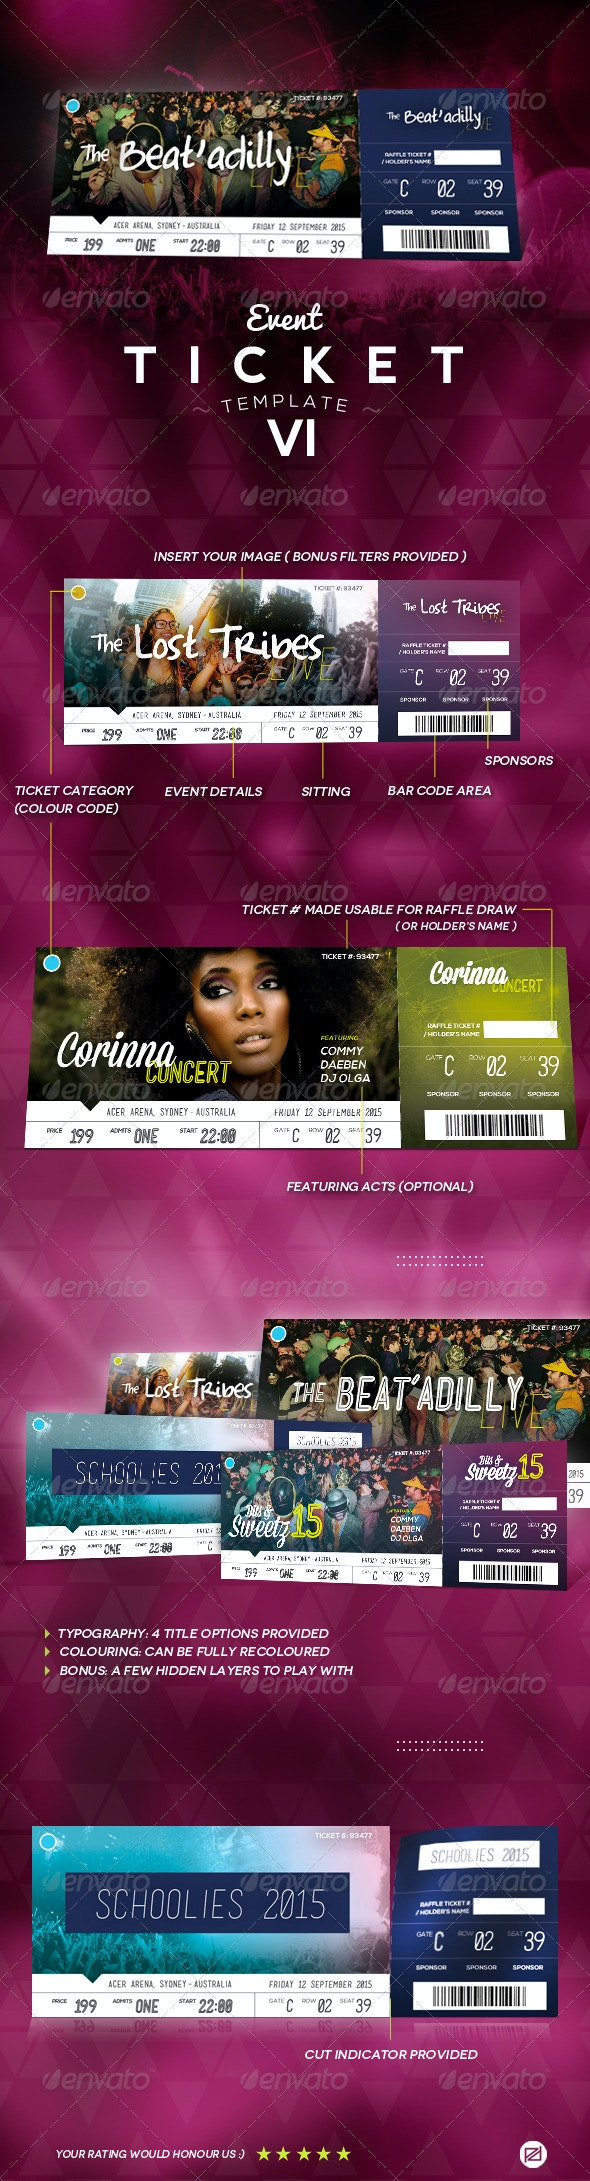 Event Ticket Template VI - Miscellaneous Print Templates